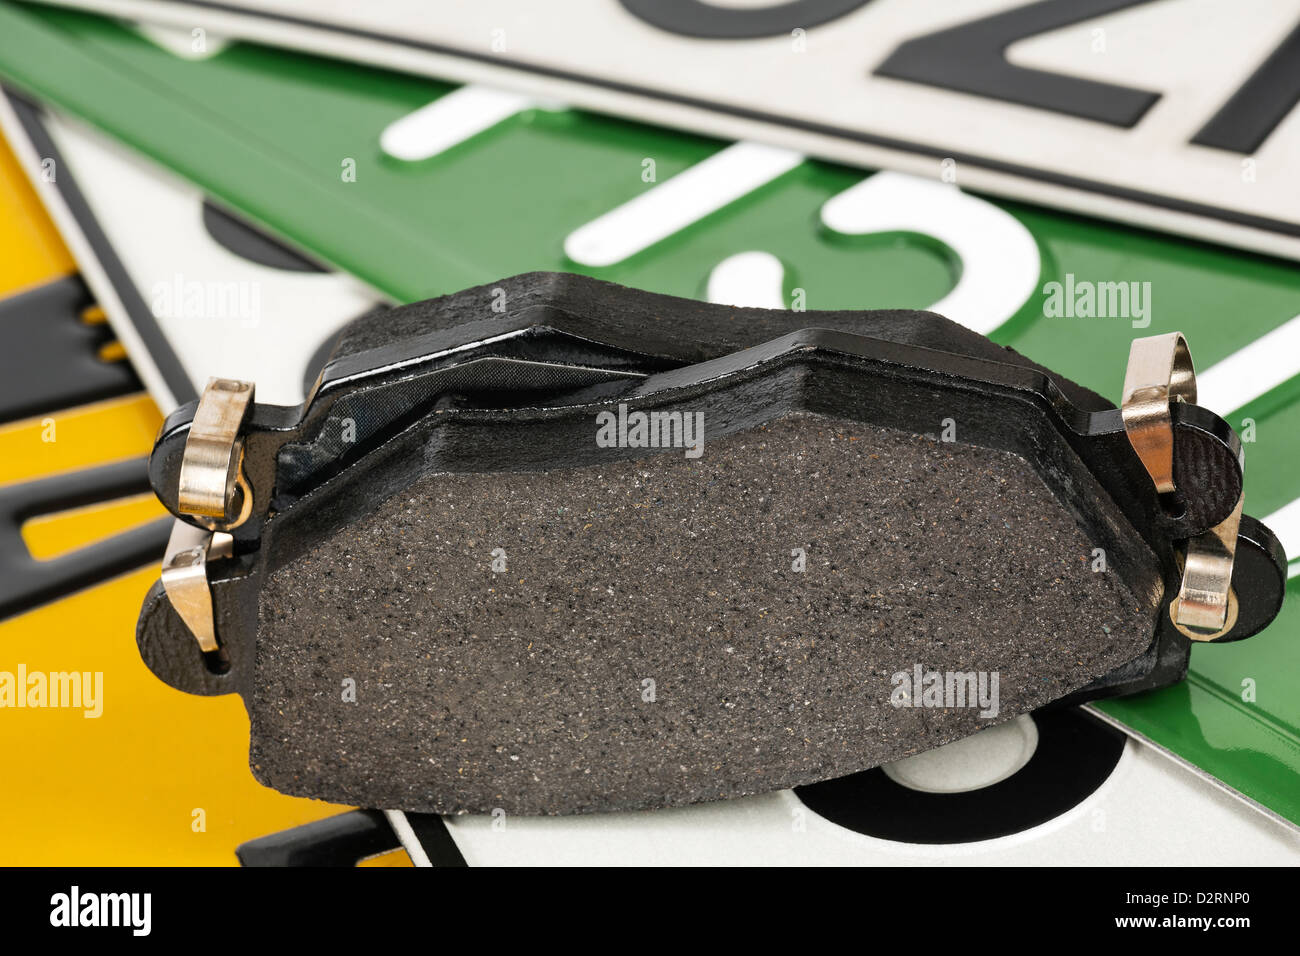 Brake pads and license plates - Stock Image